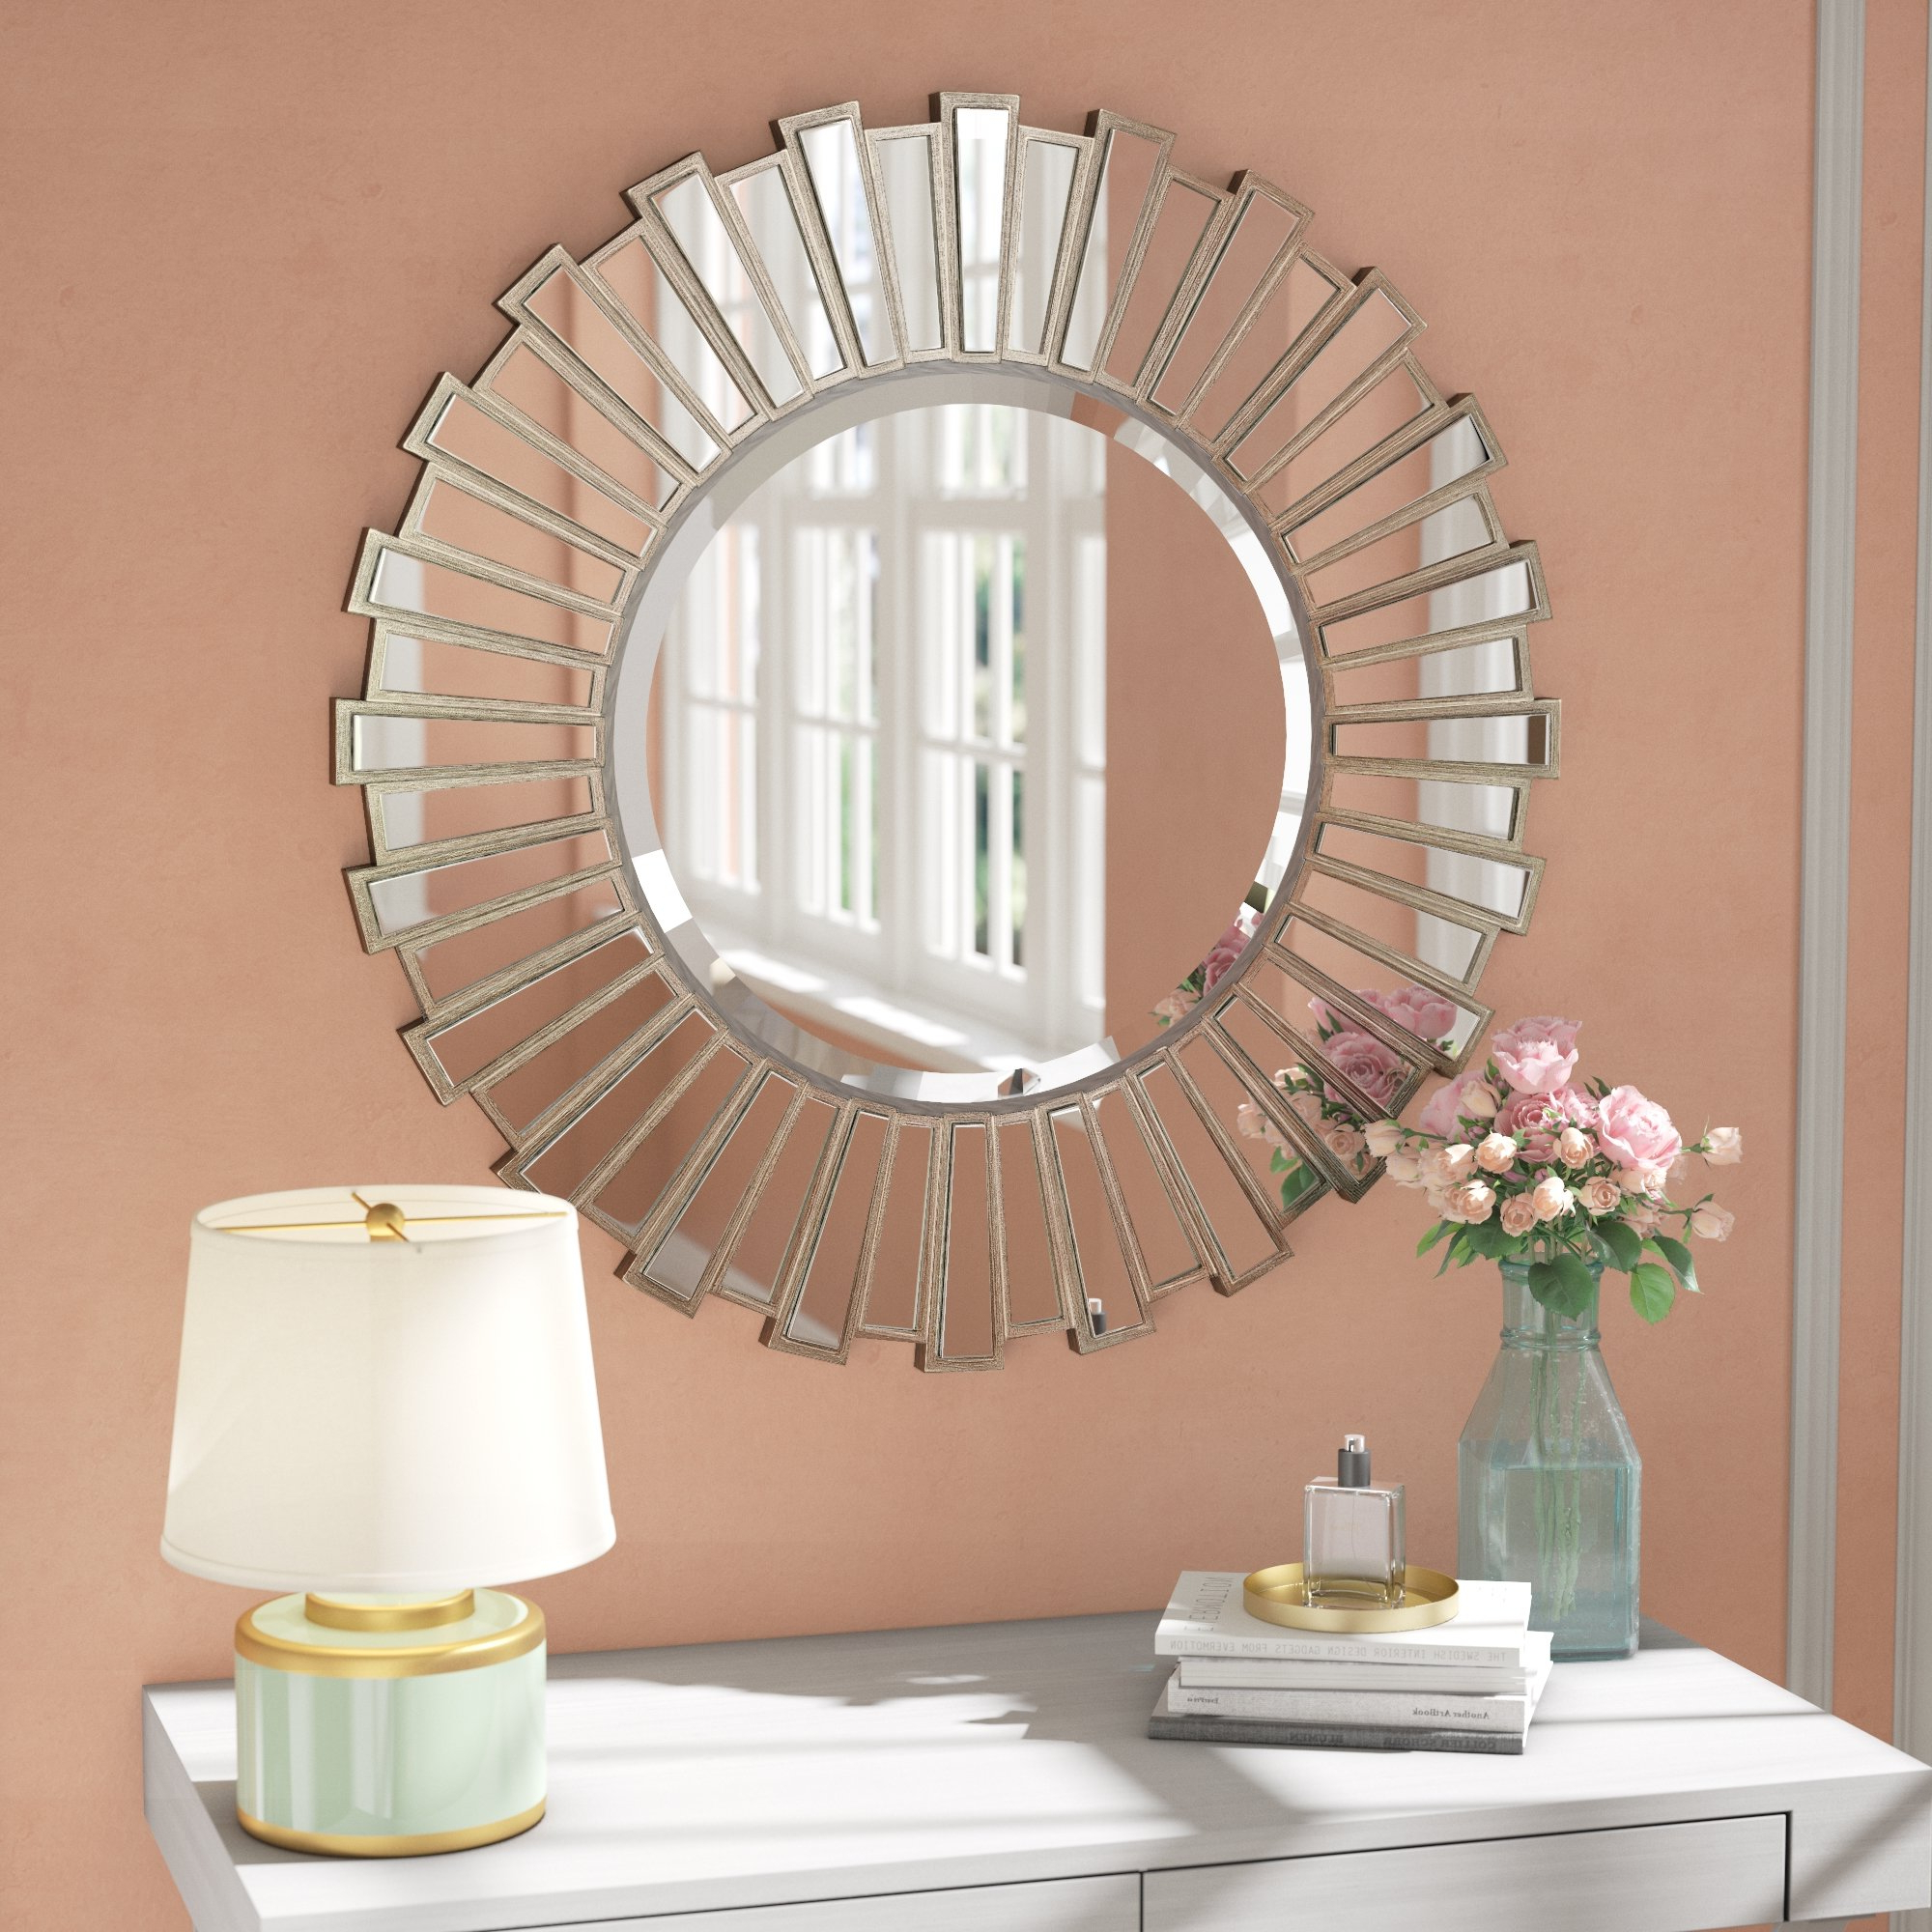 Latest Josephson Starburst Glam Beveled Accent Wall Mirrors Pertaining To Willa Arlo Interiors Bertrand Sunburst Resin Accent Wall Mirror (Gallery 9 of 20)